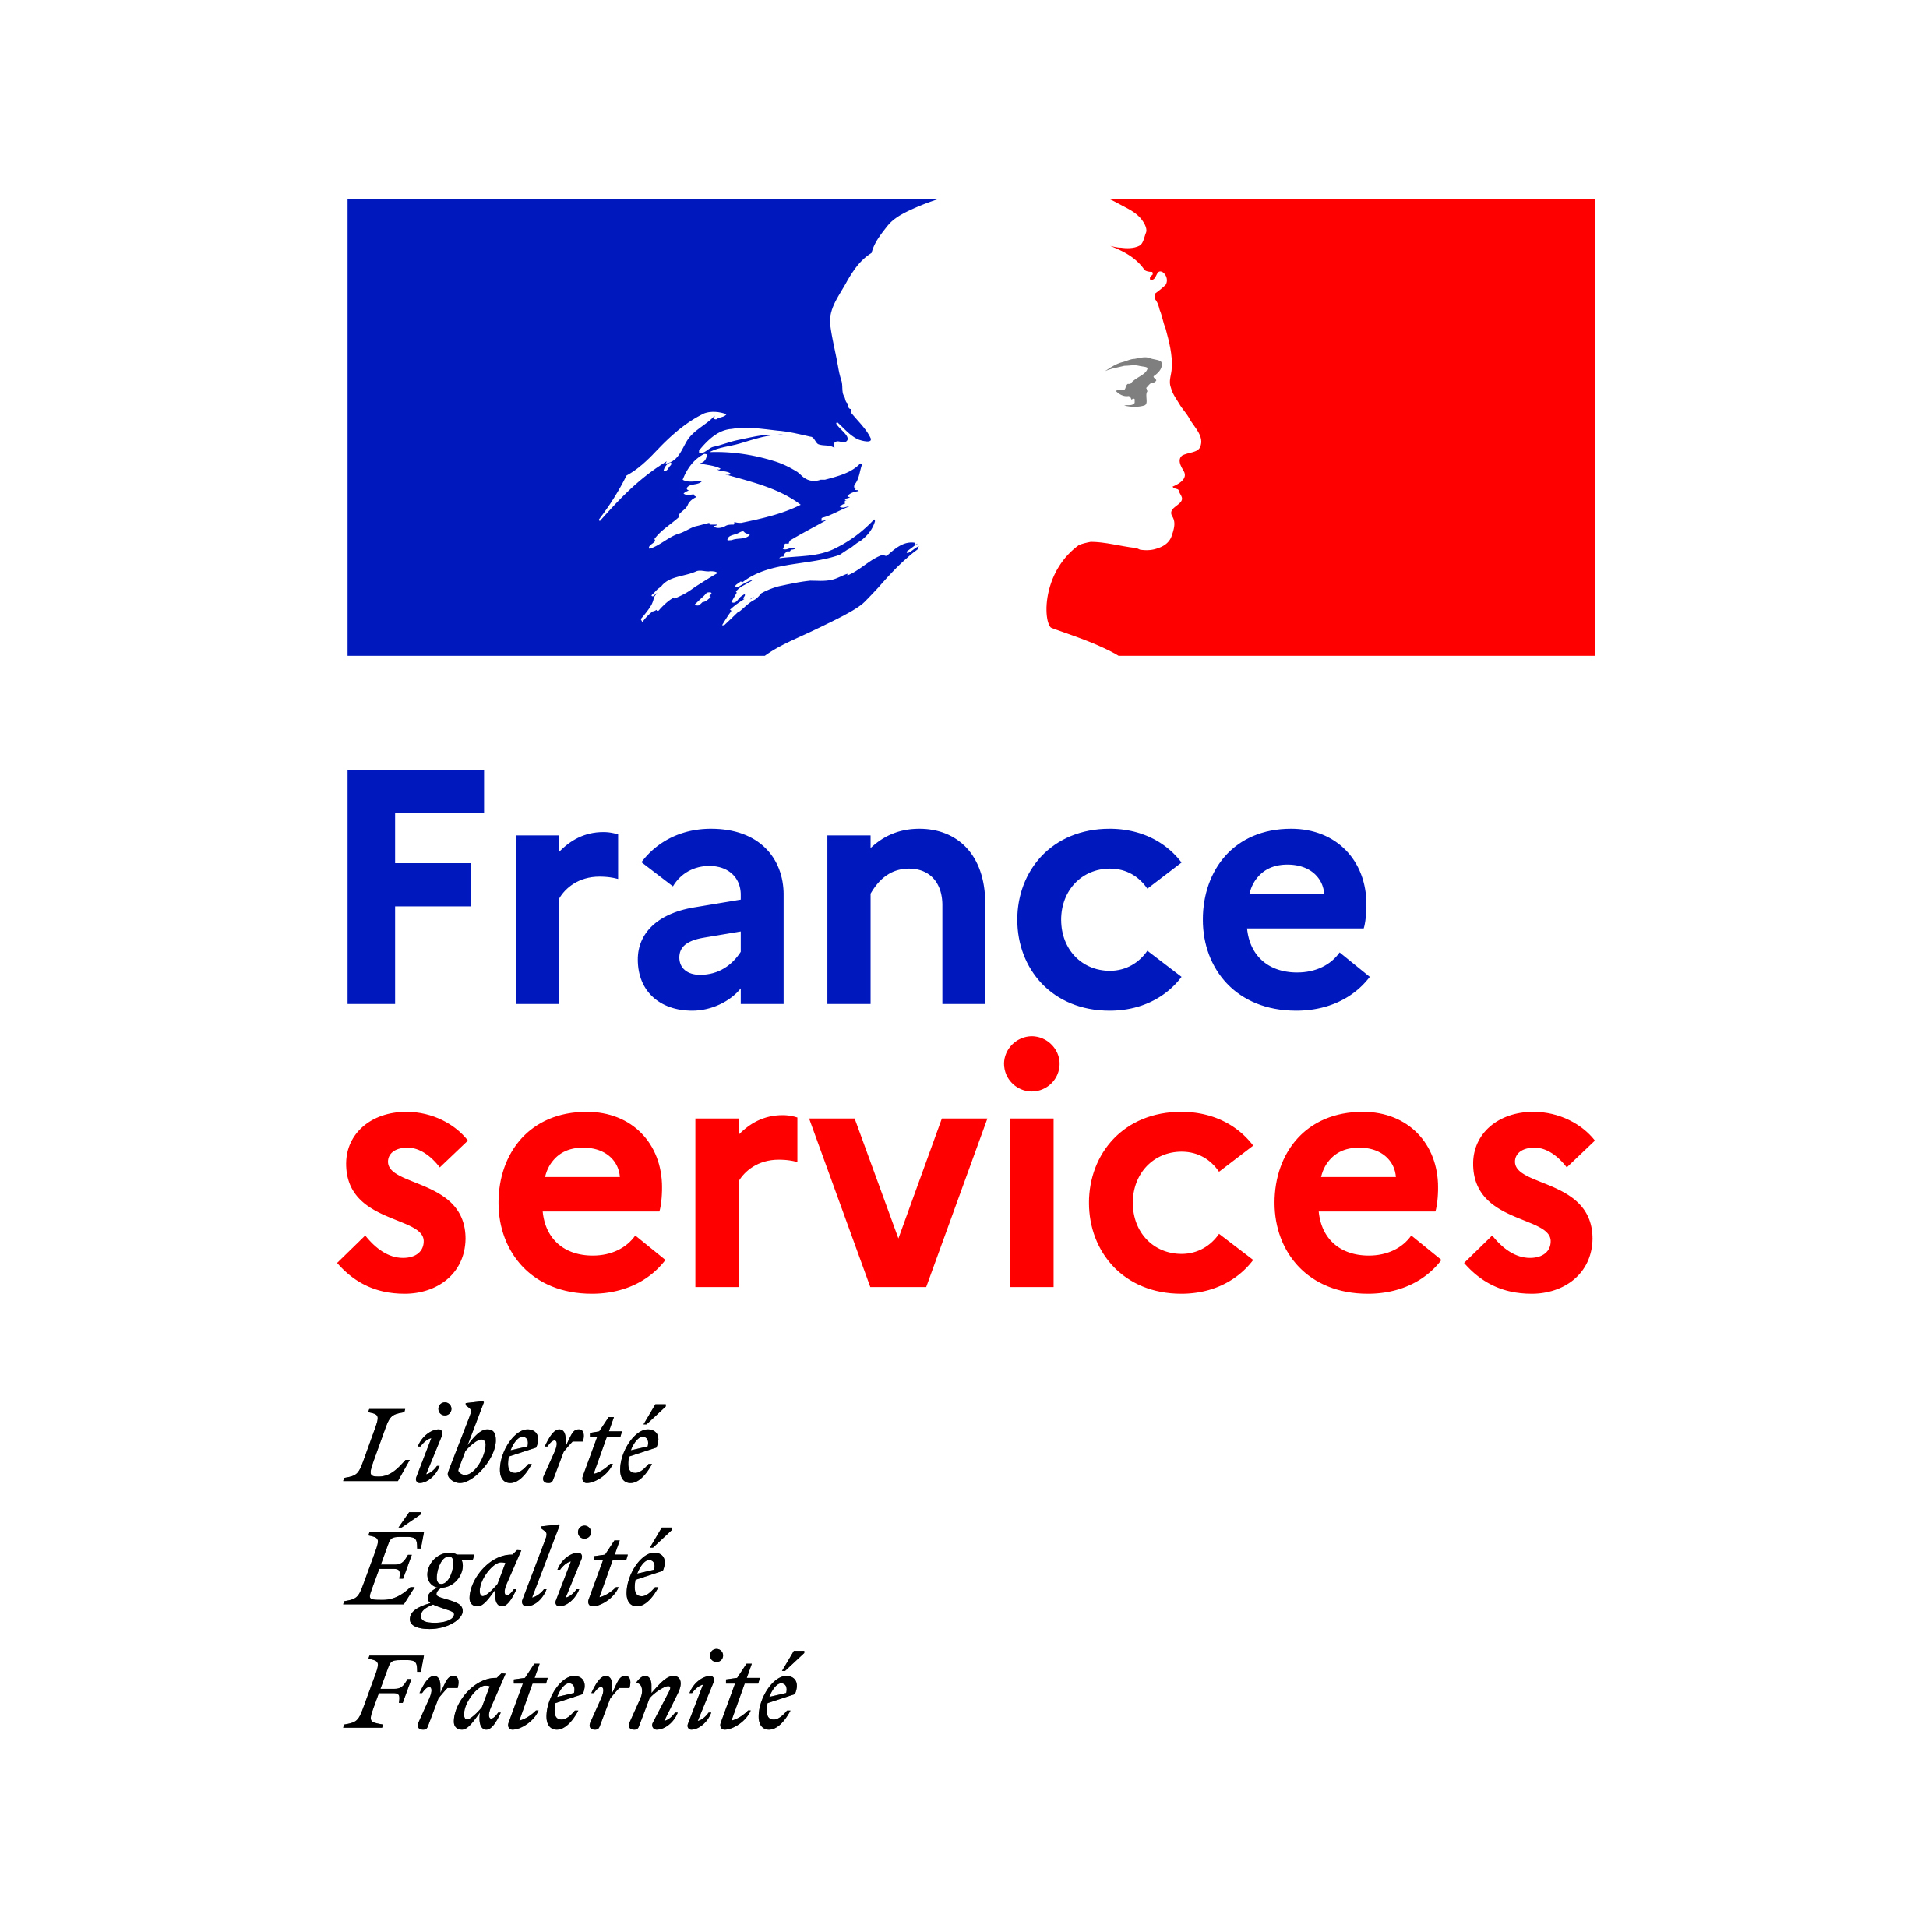 France Services